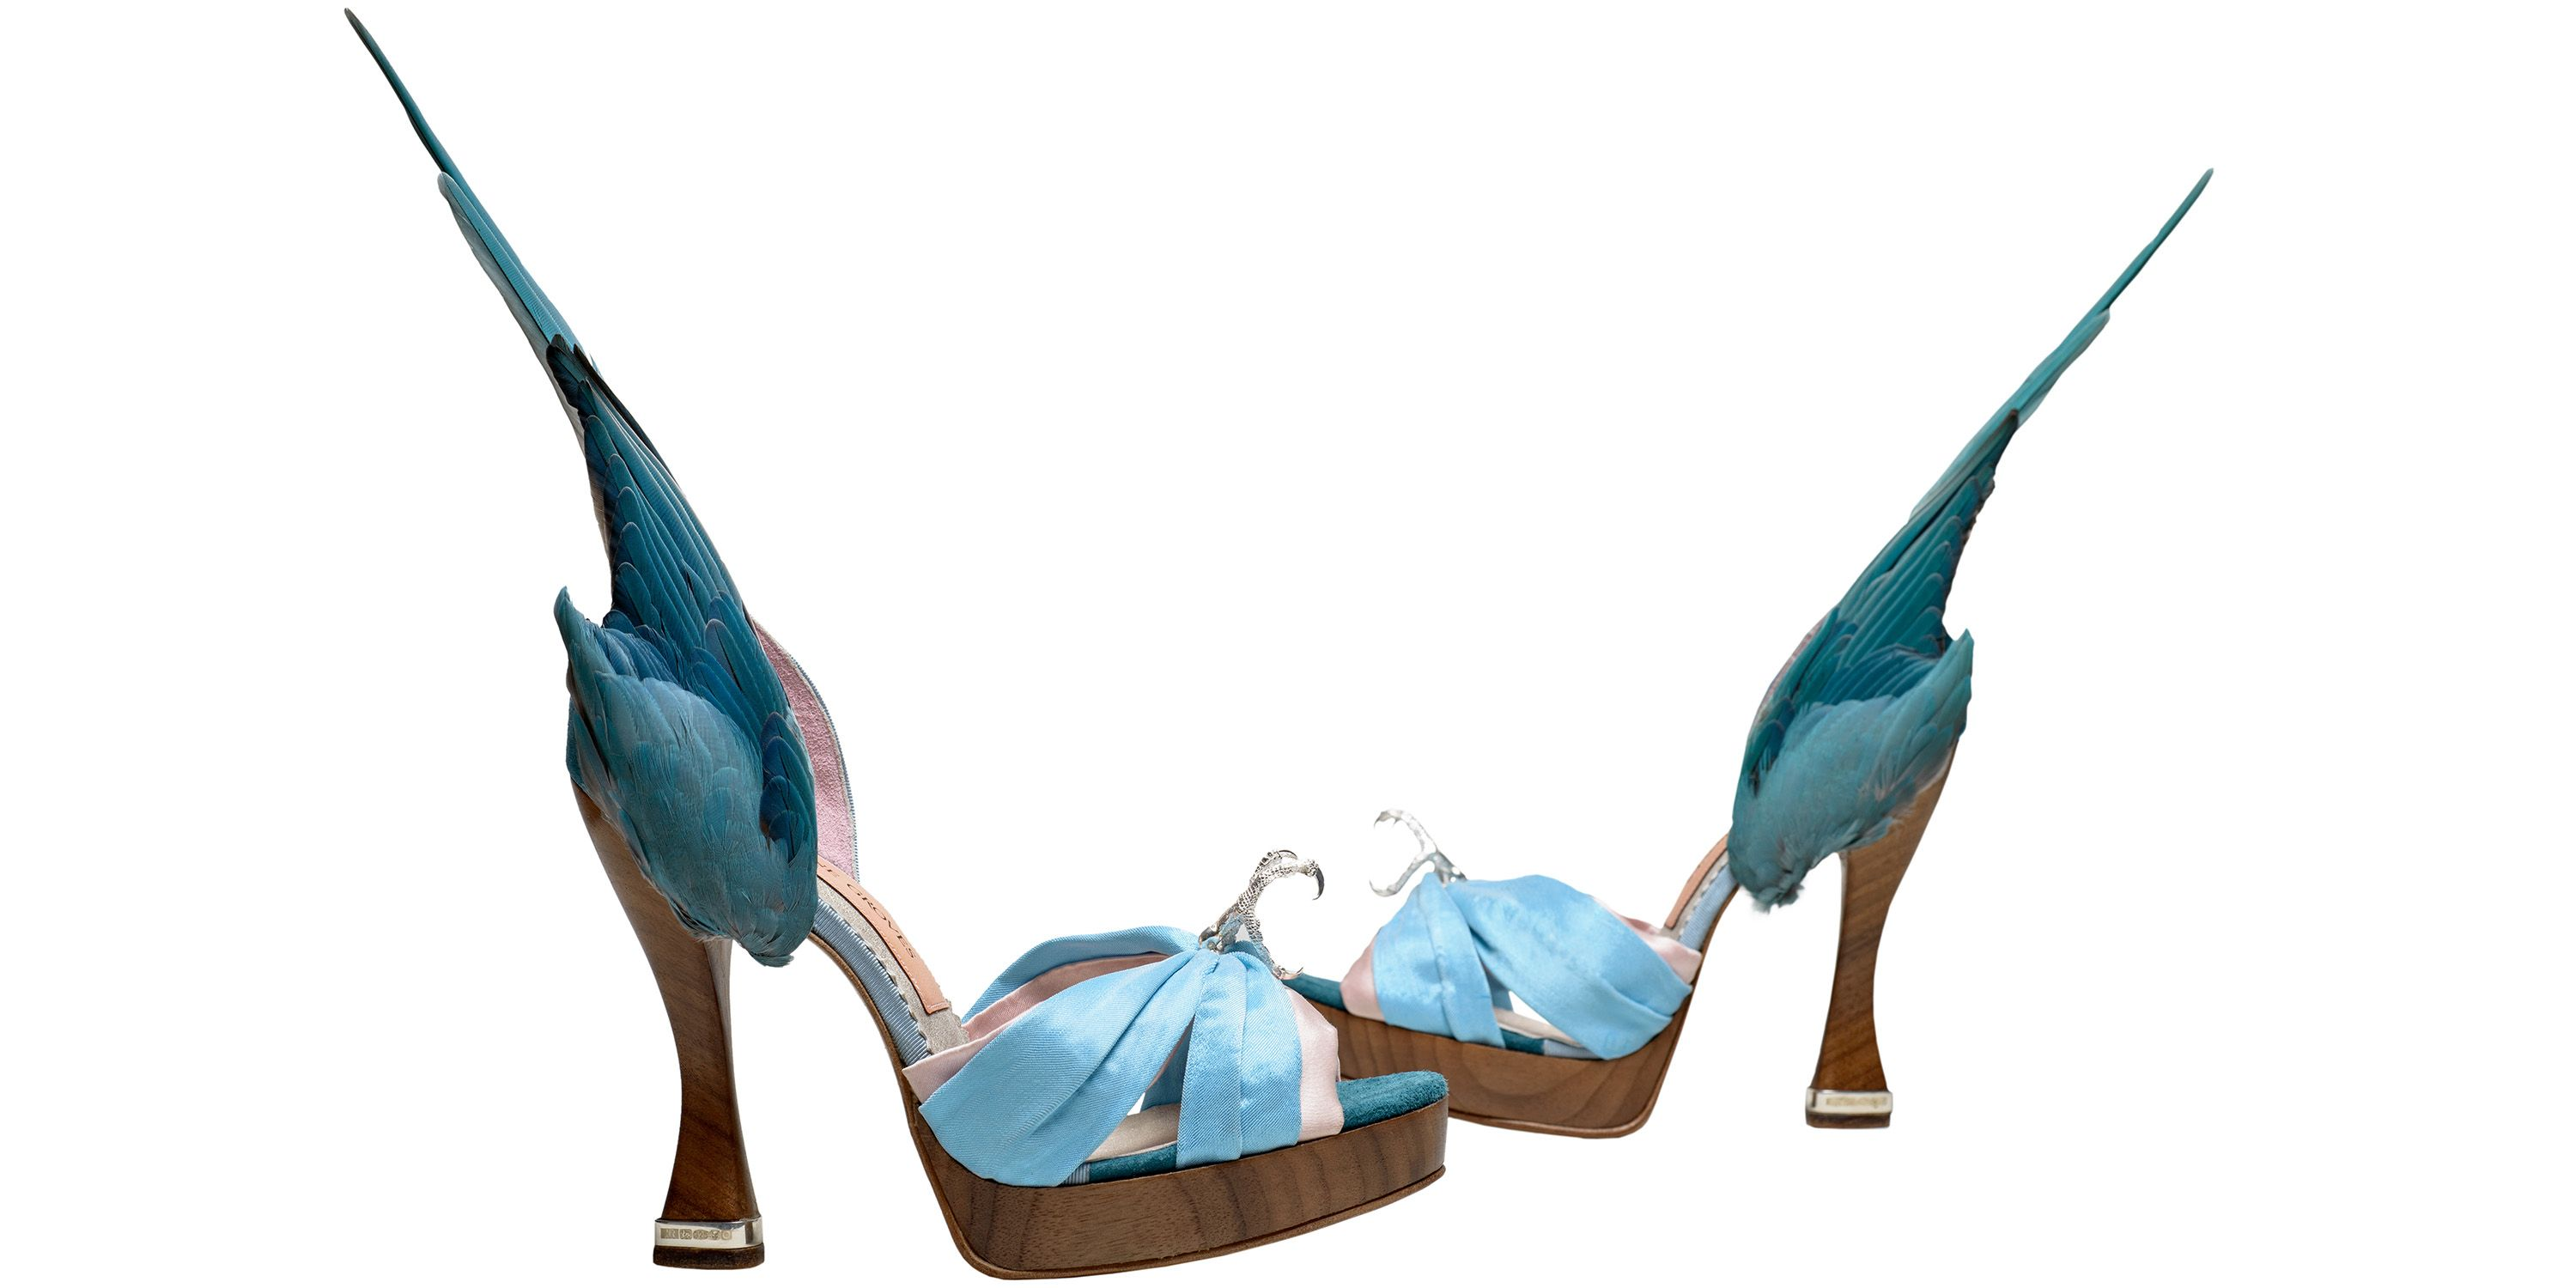 Caroline Groves (b.1959), 'Parakeet' shoes, leather silk satin, solid silver talons and heel tips, with feathers, England, 2014